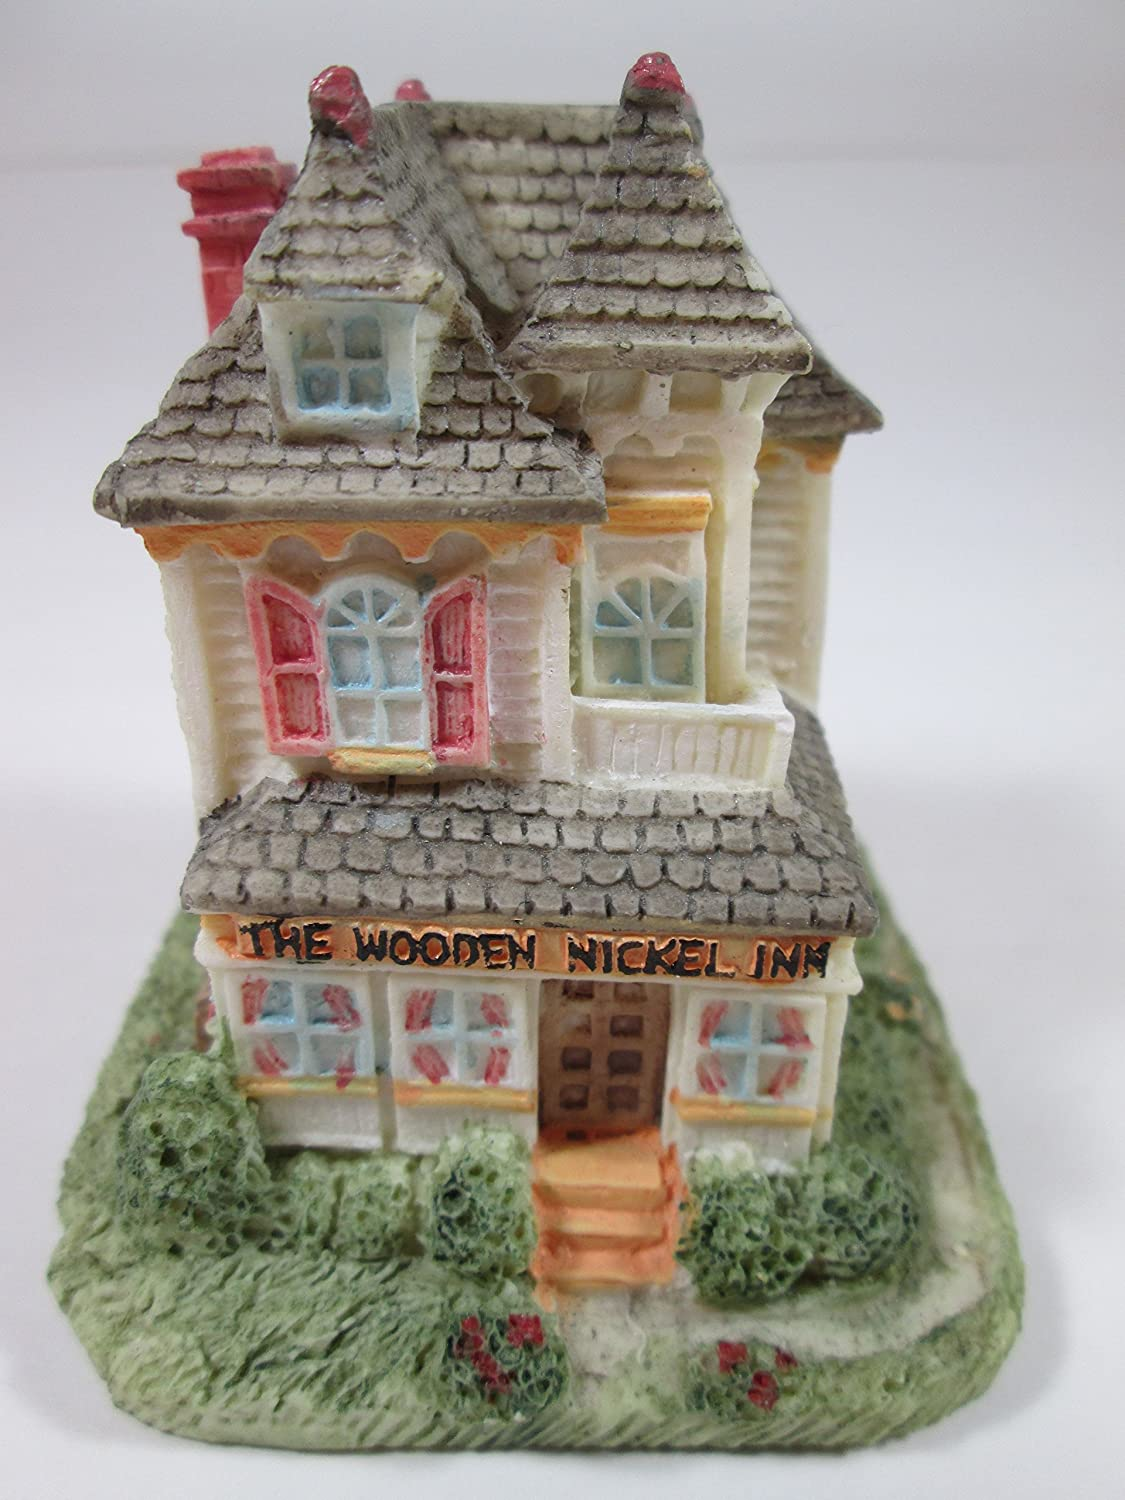 Liberty Falls - The Wooden Nickel Inn - The Americana Collection - AH42 Inc